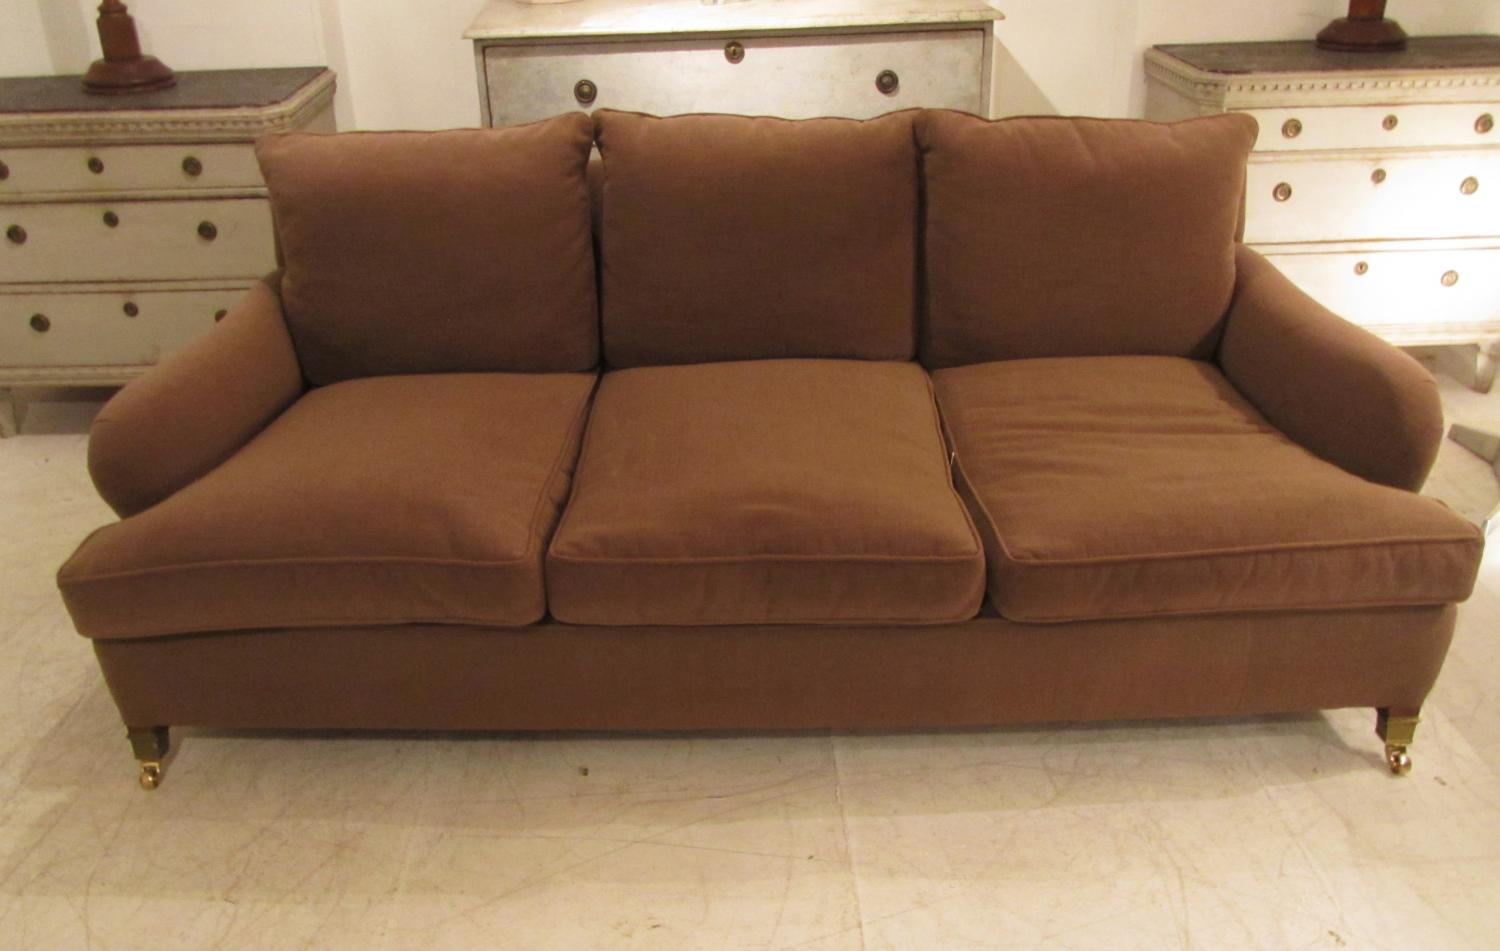 A three seater sofa